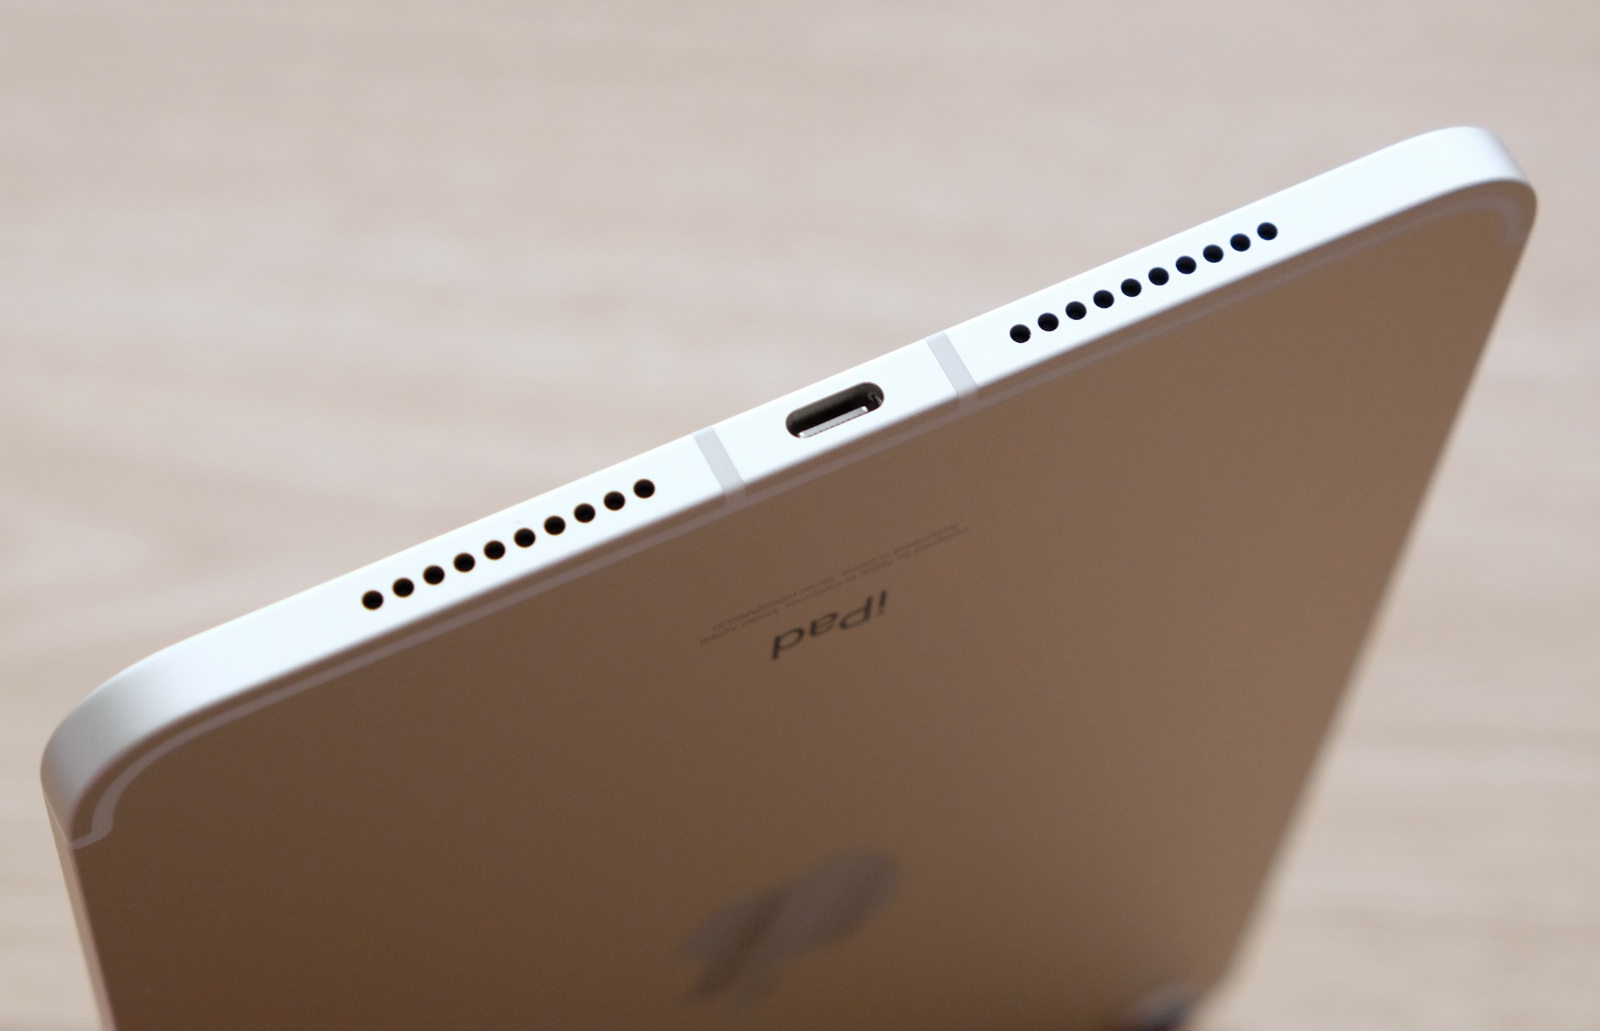 Happily, the latest iPad Mini ditches the Lightning port for the more modern and versatile USB-C port.